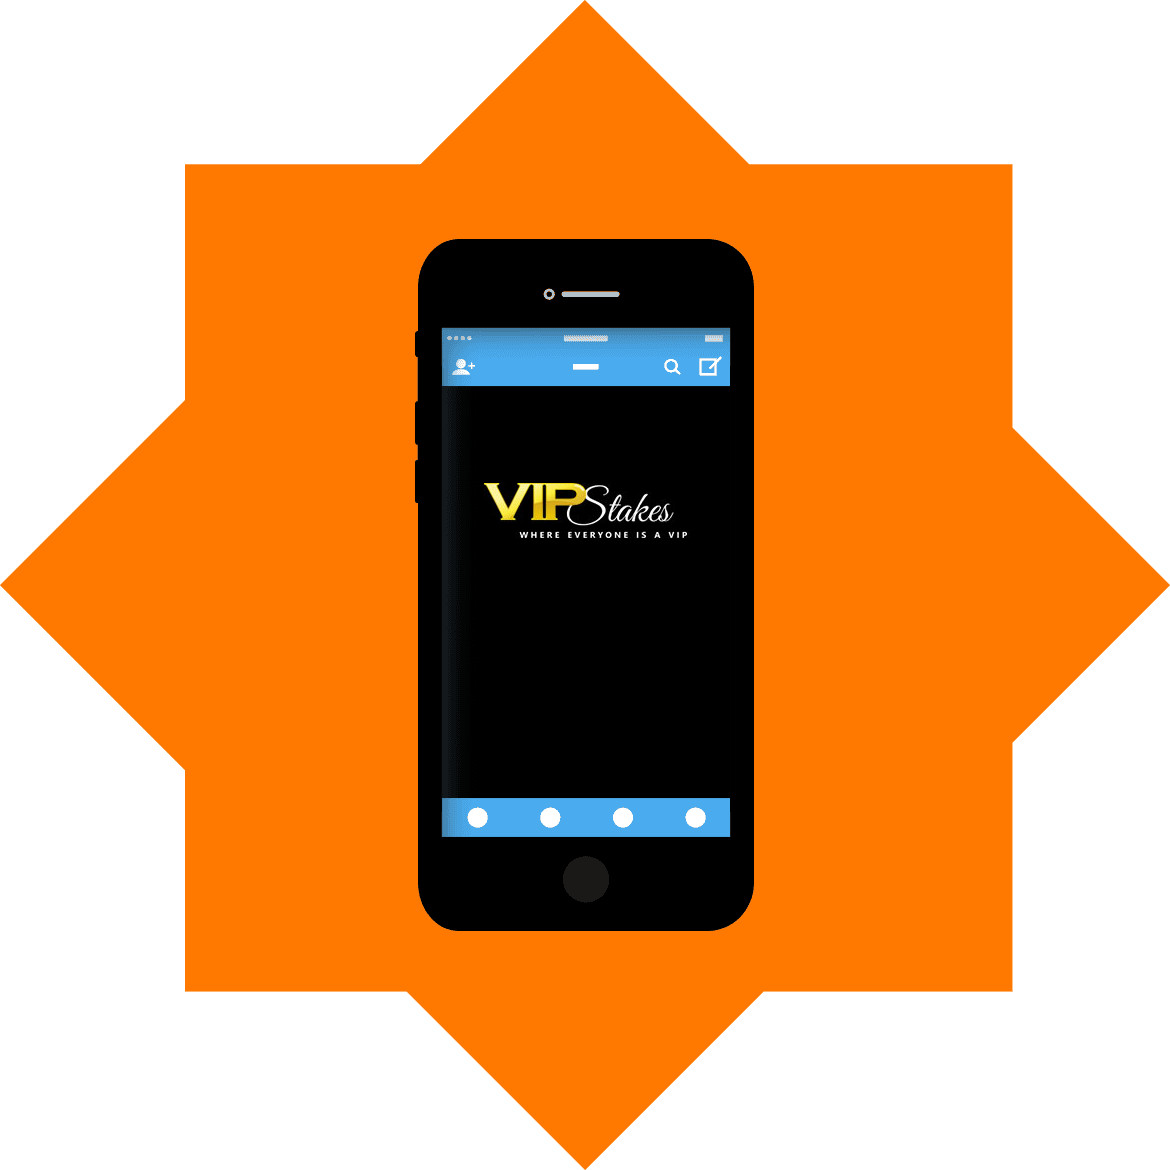 VIP Stakes - Mobile friendly